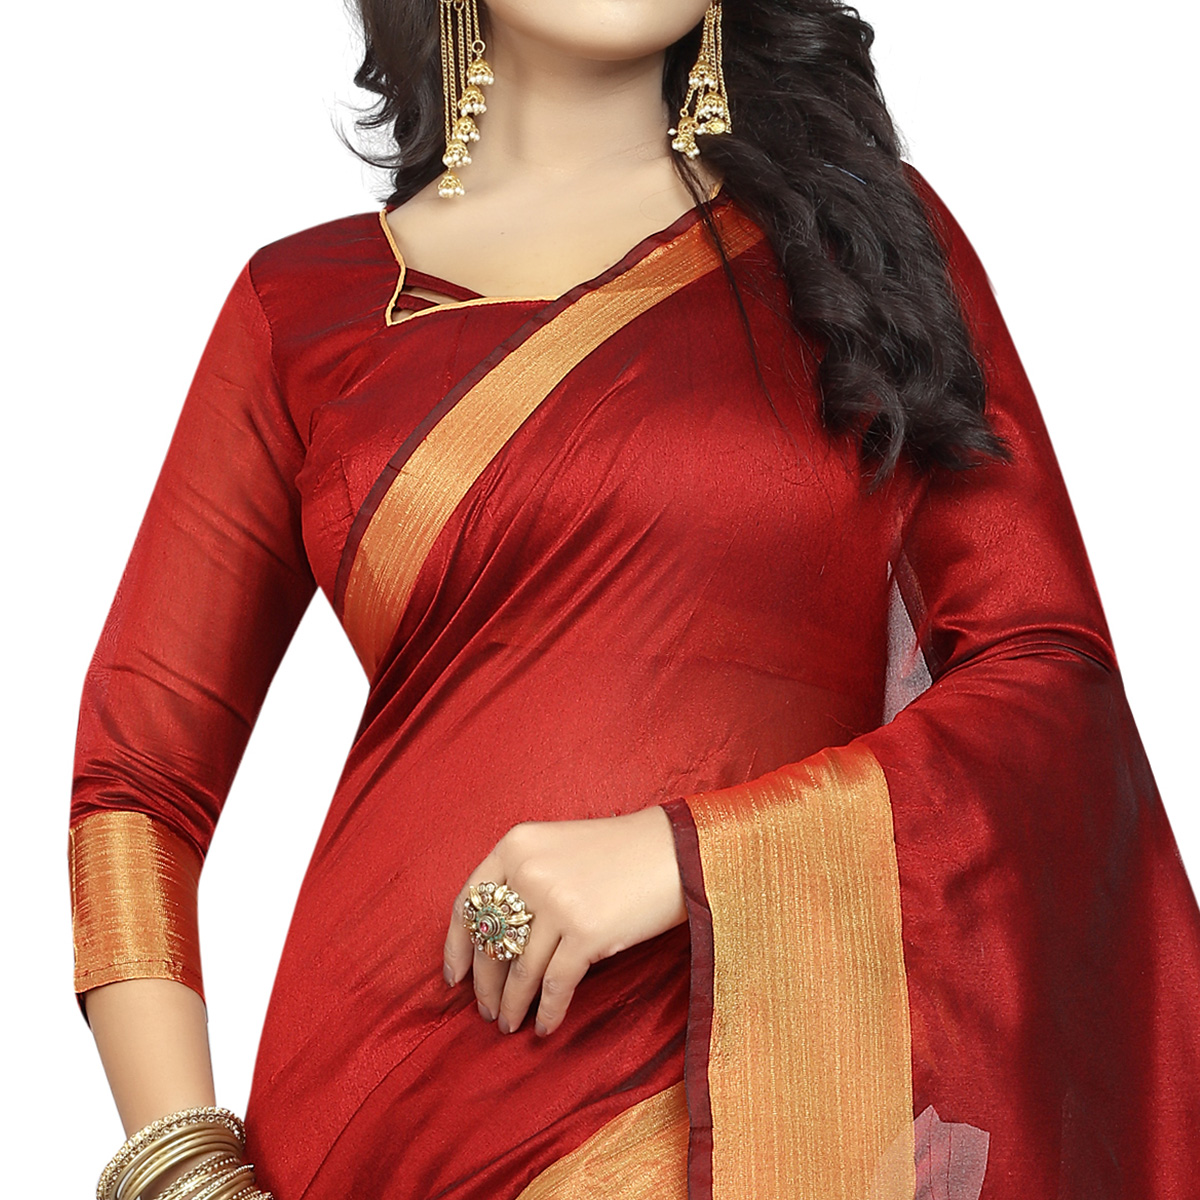 Entrancing Red Colored Festive Wear Cotton Silk Saree